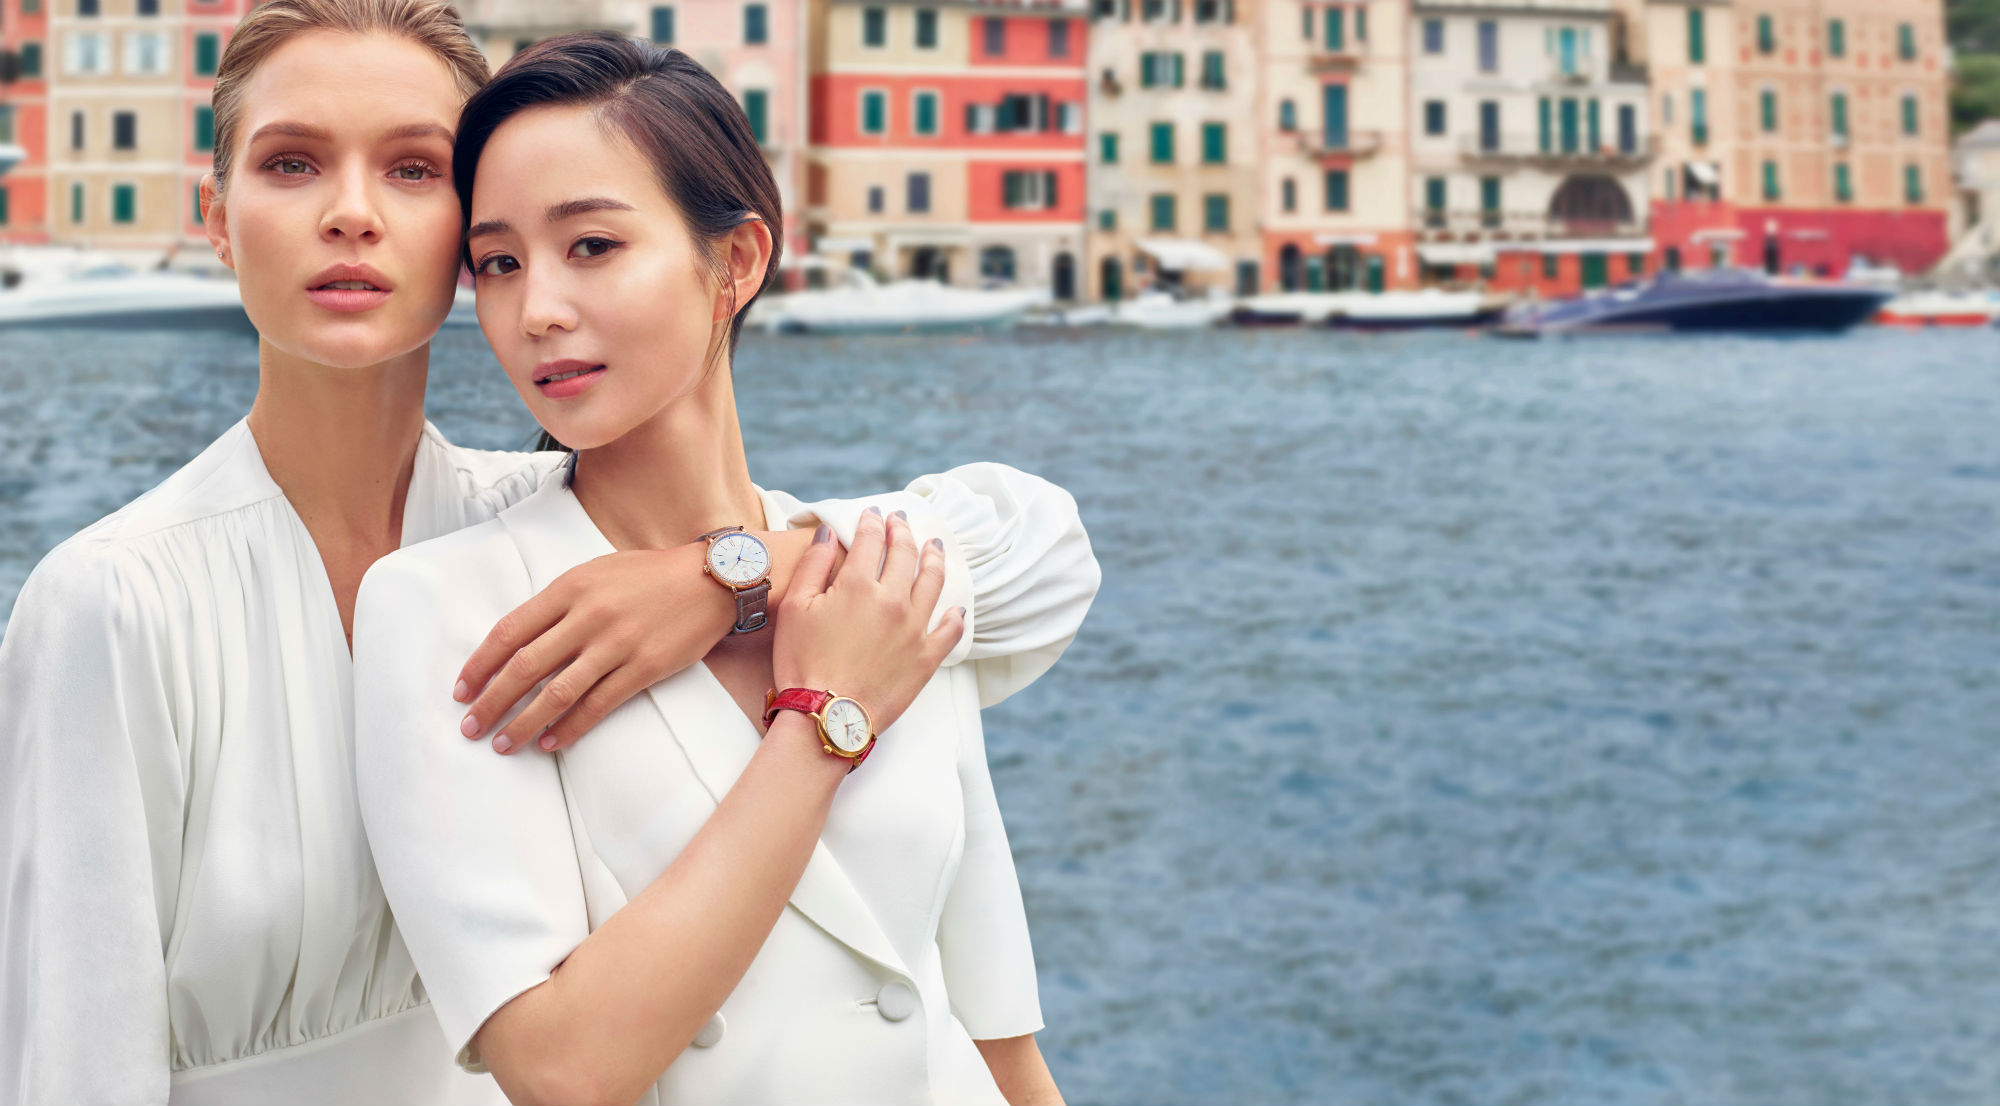 Model Josephine Skriver and Actress Ning Chang took to the Italian coast to model the watch